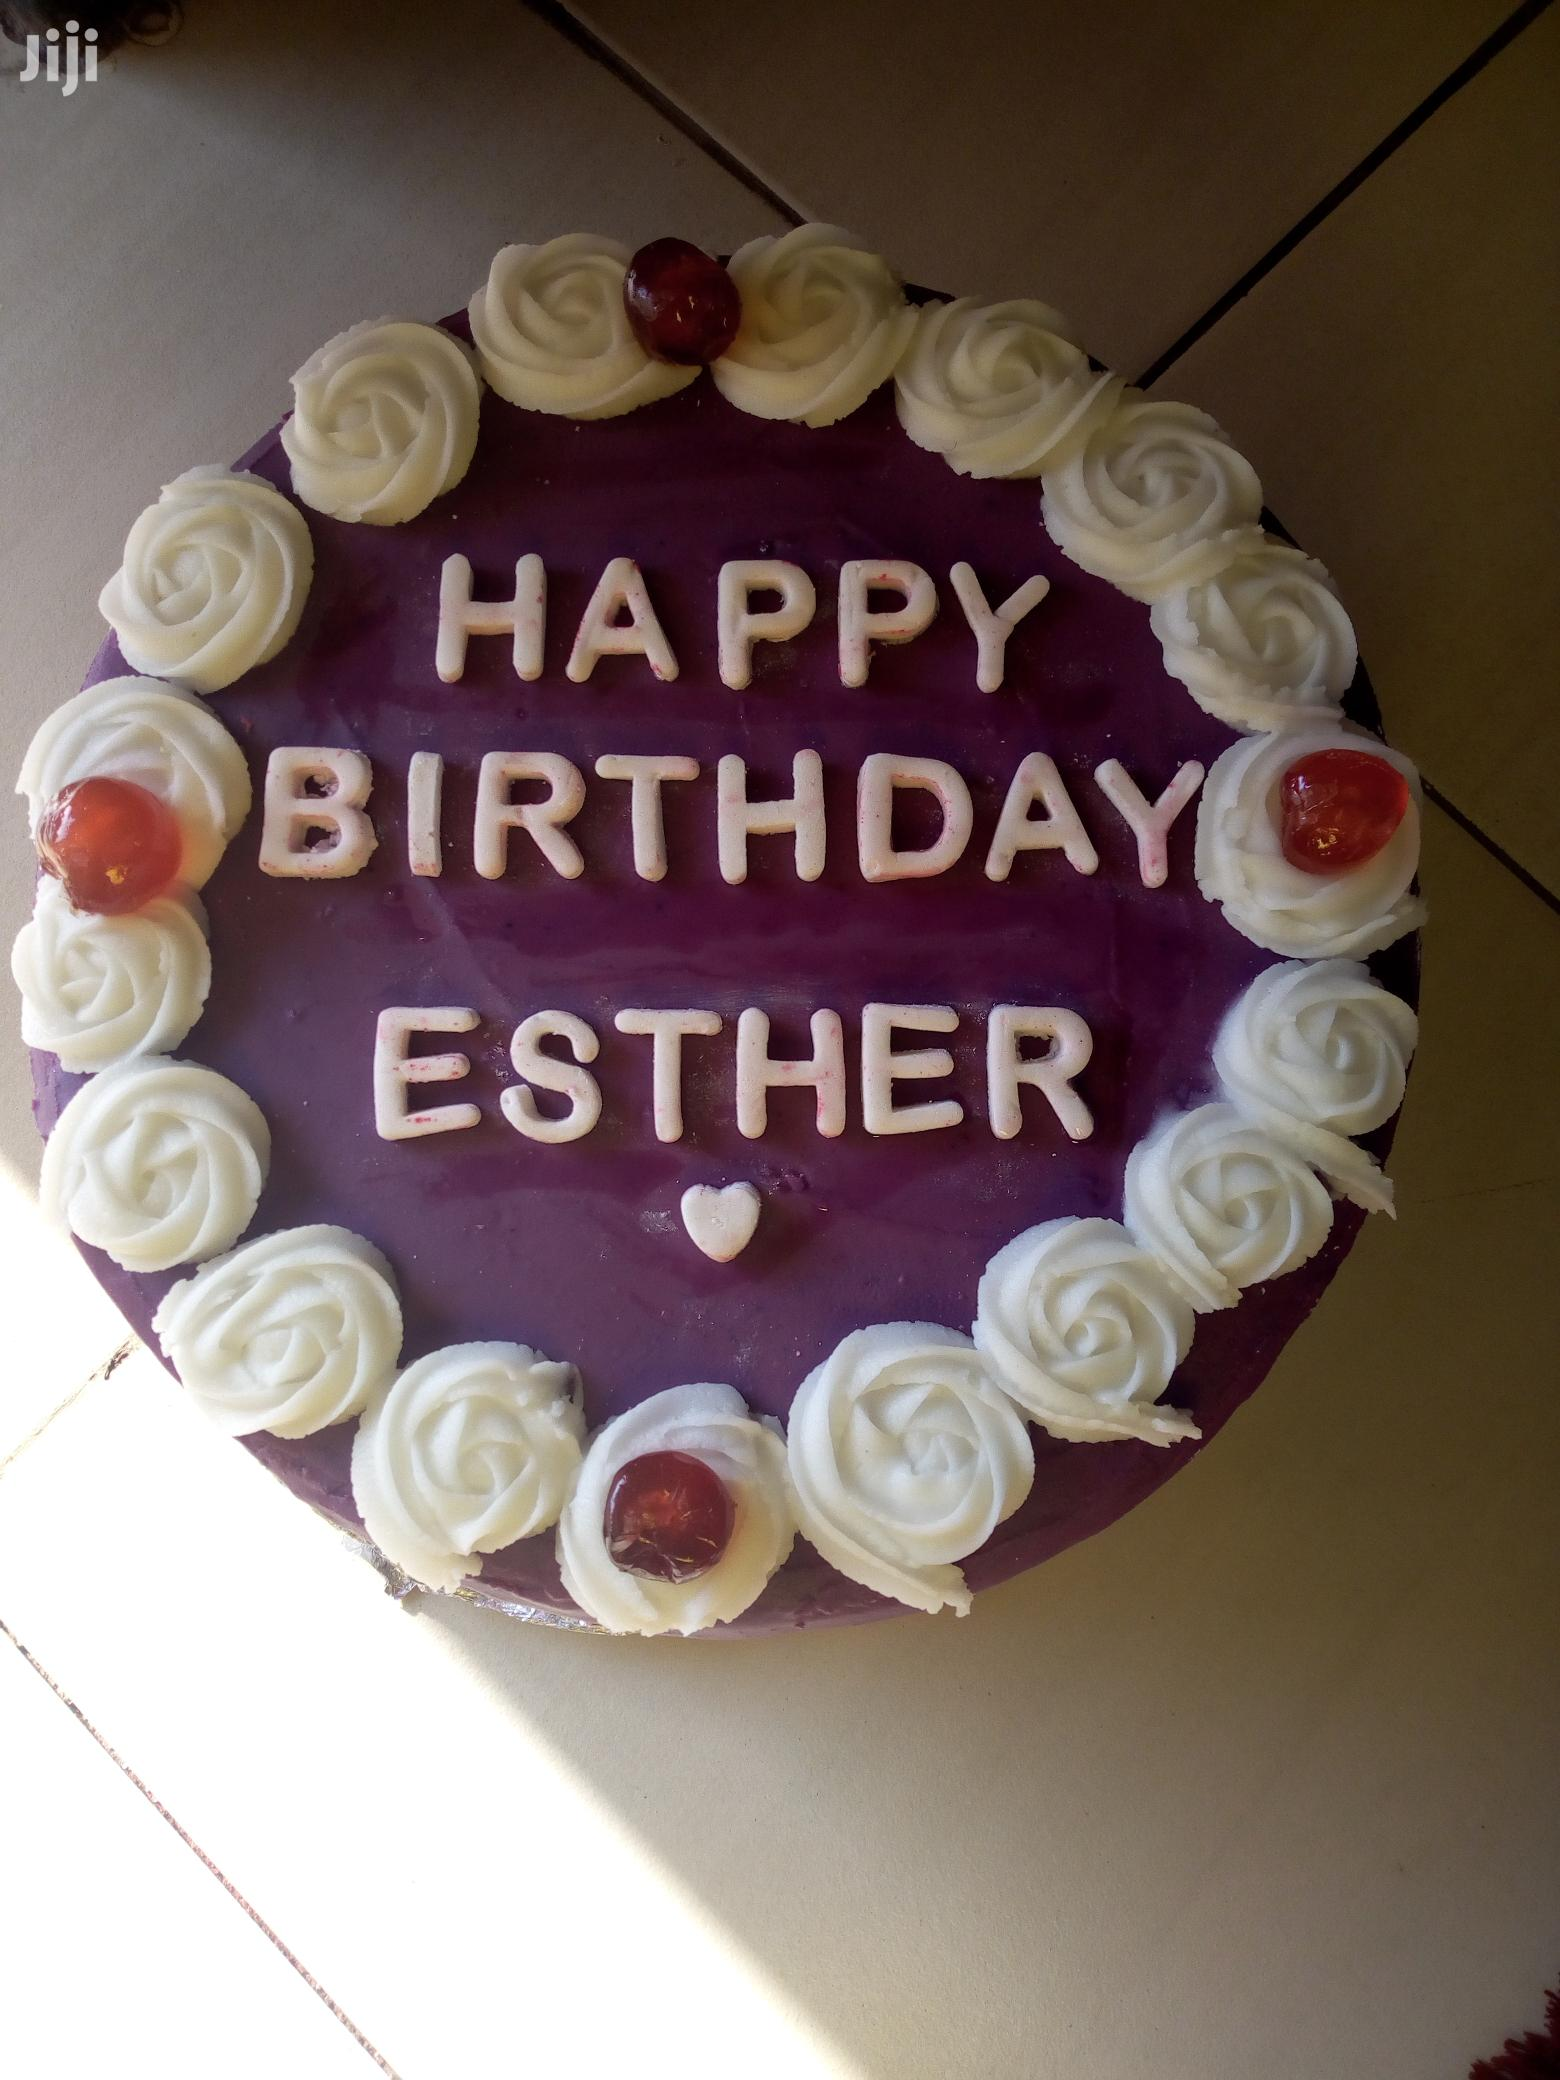 Cakes Availiable In Any Flavour Of Ur Choice | Party, Catering & Event Services for sale in Kampala, Central Region, Uganda